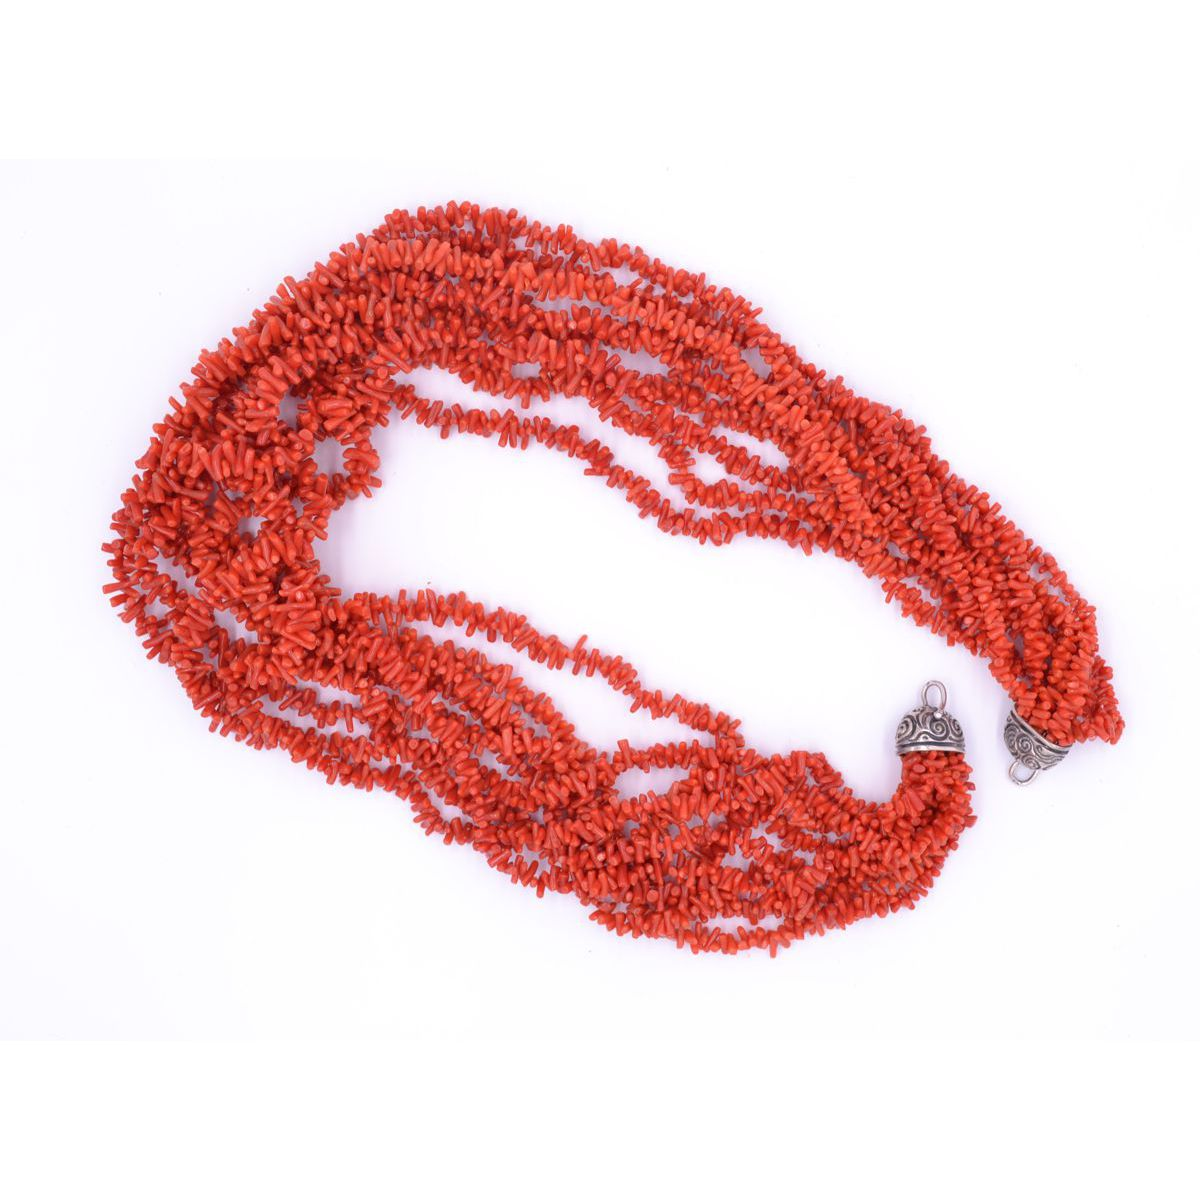 NECKLACE 9 STRANDS CORAL Red BRASS Selection